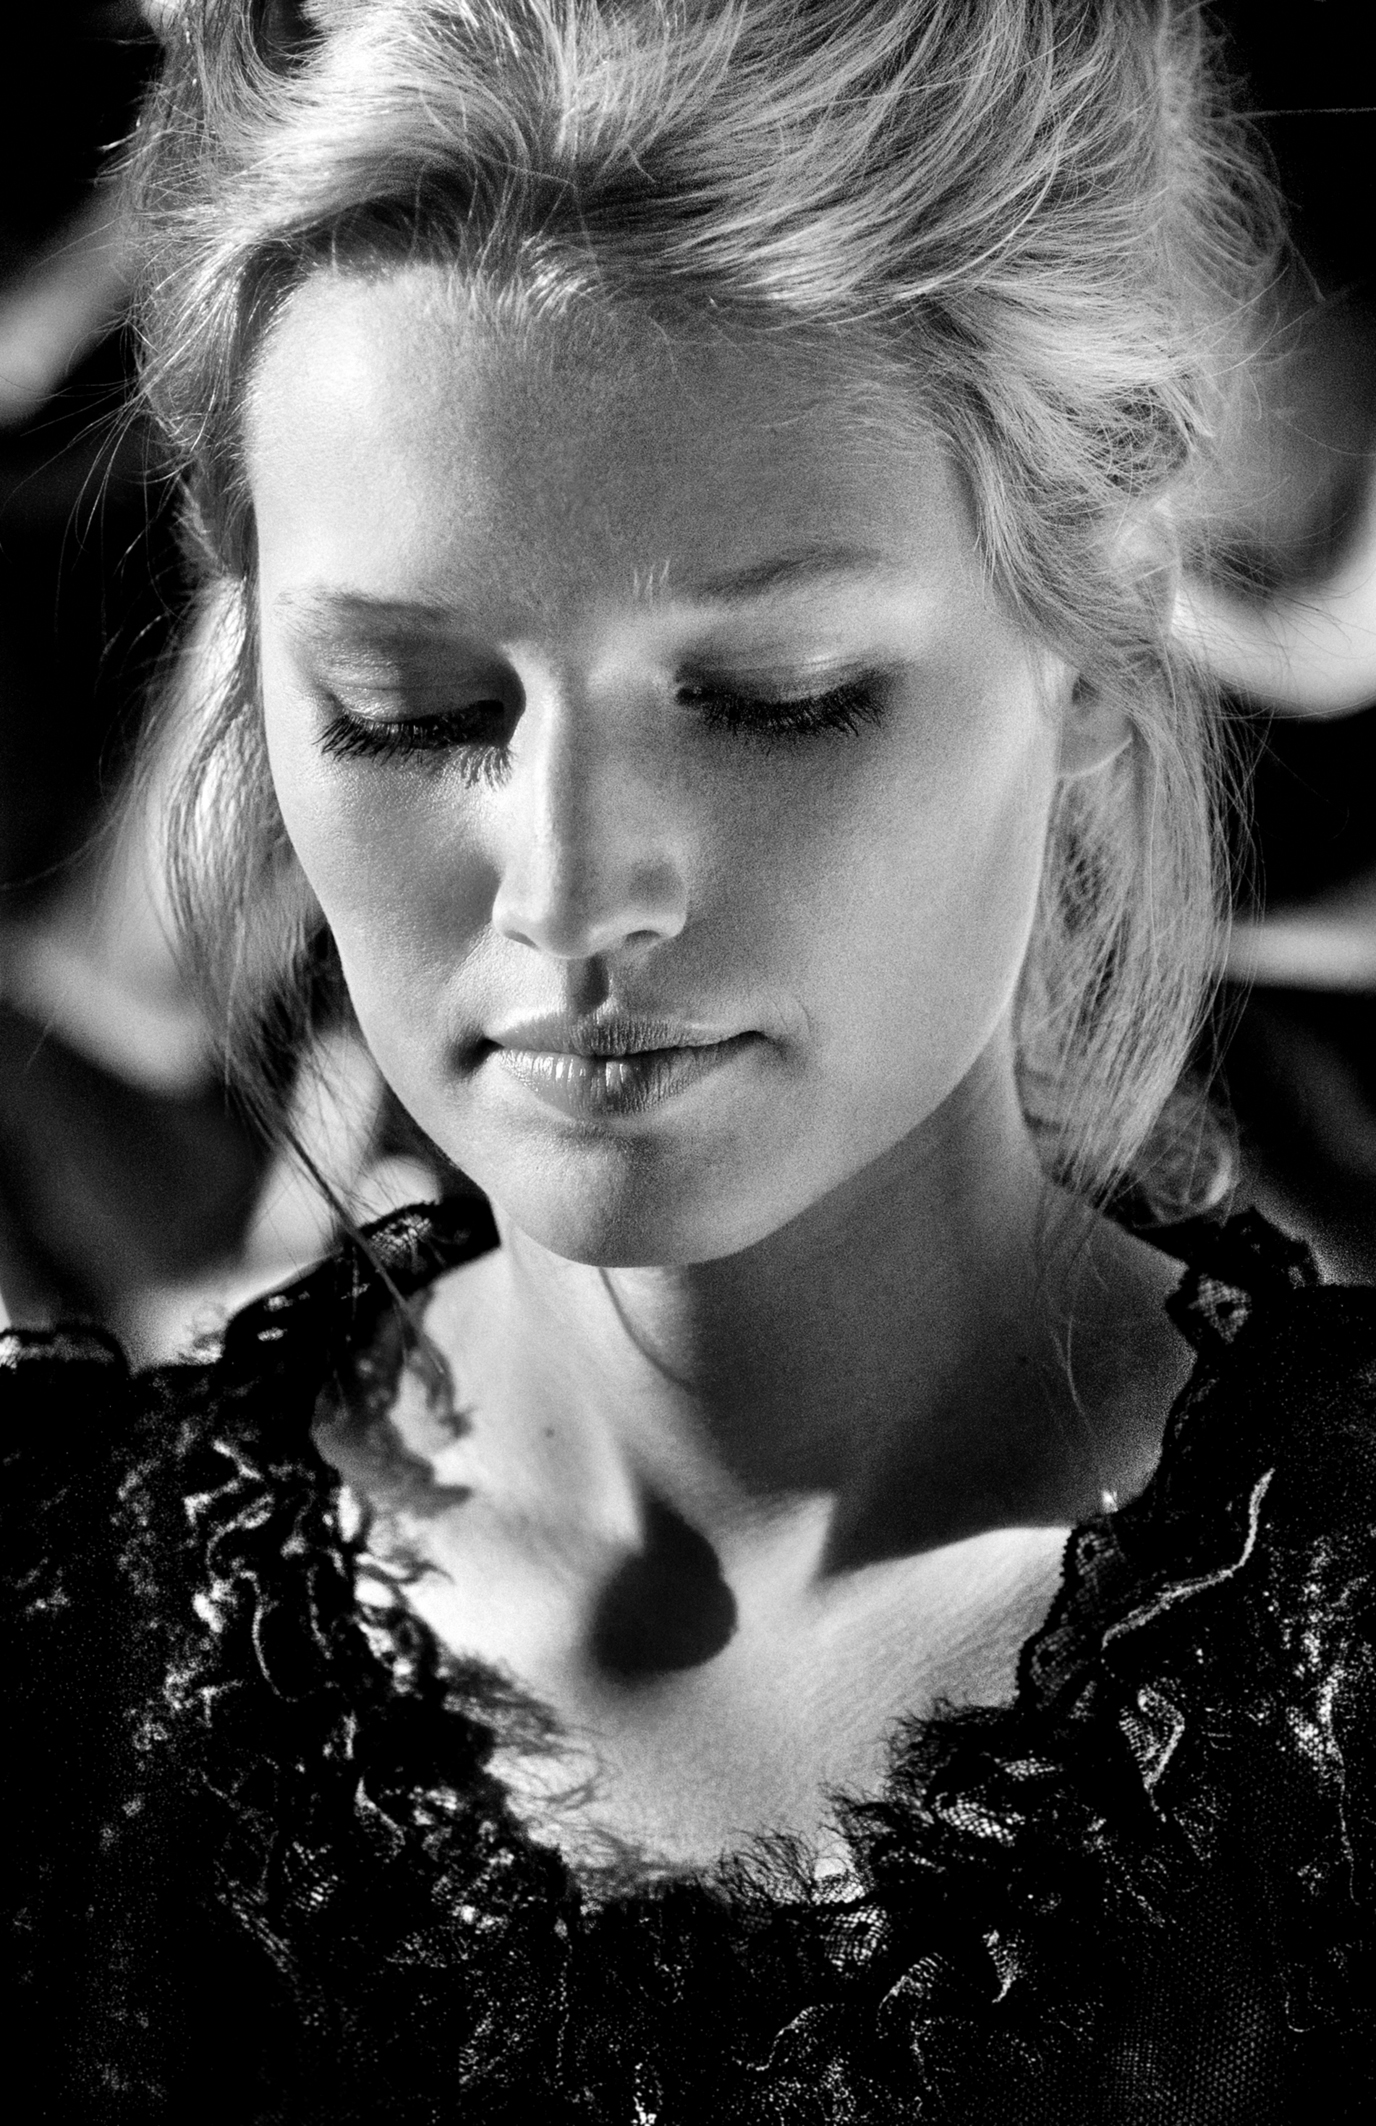 © Faces of Talent by Till Brönner, to be published by teNeues in September 2014, www.teneues.com. Toni Garrn, Photo © 2014 Till Brönner. All rights reserved.